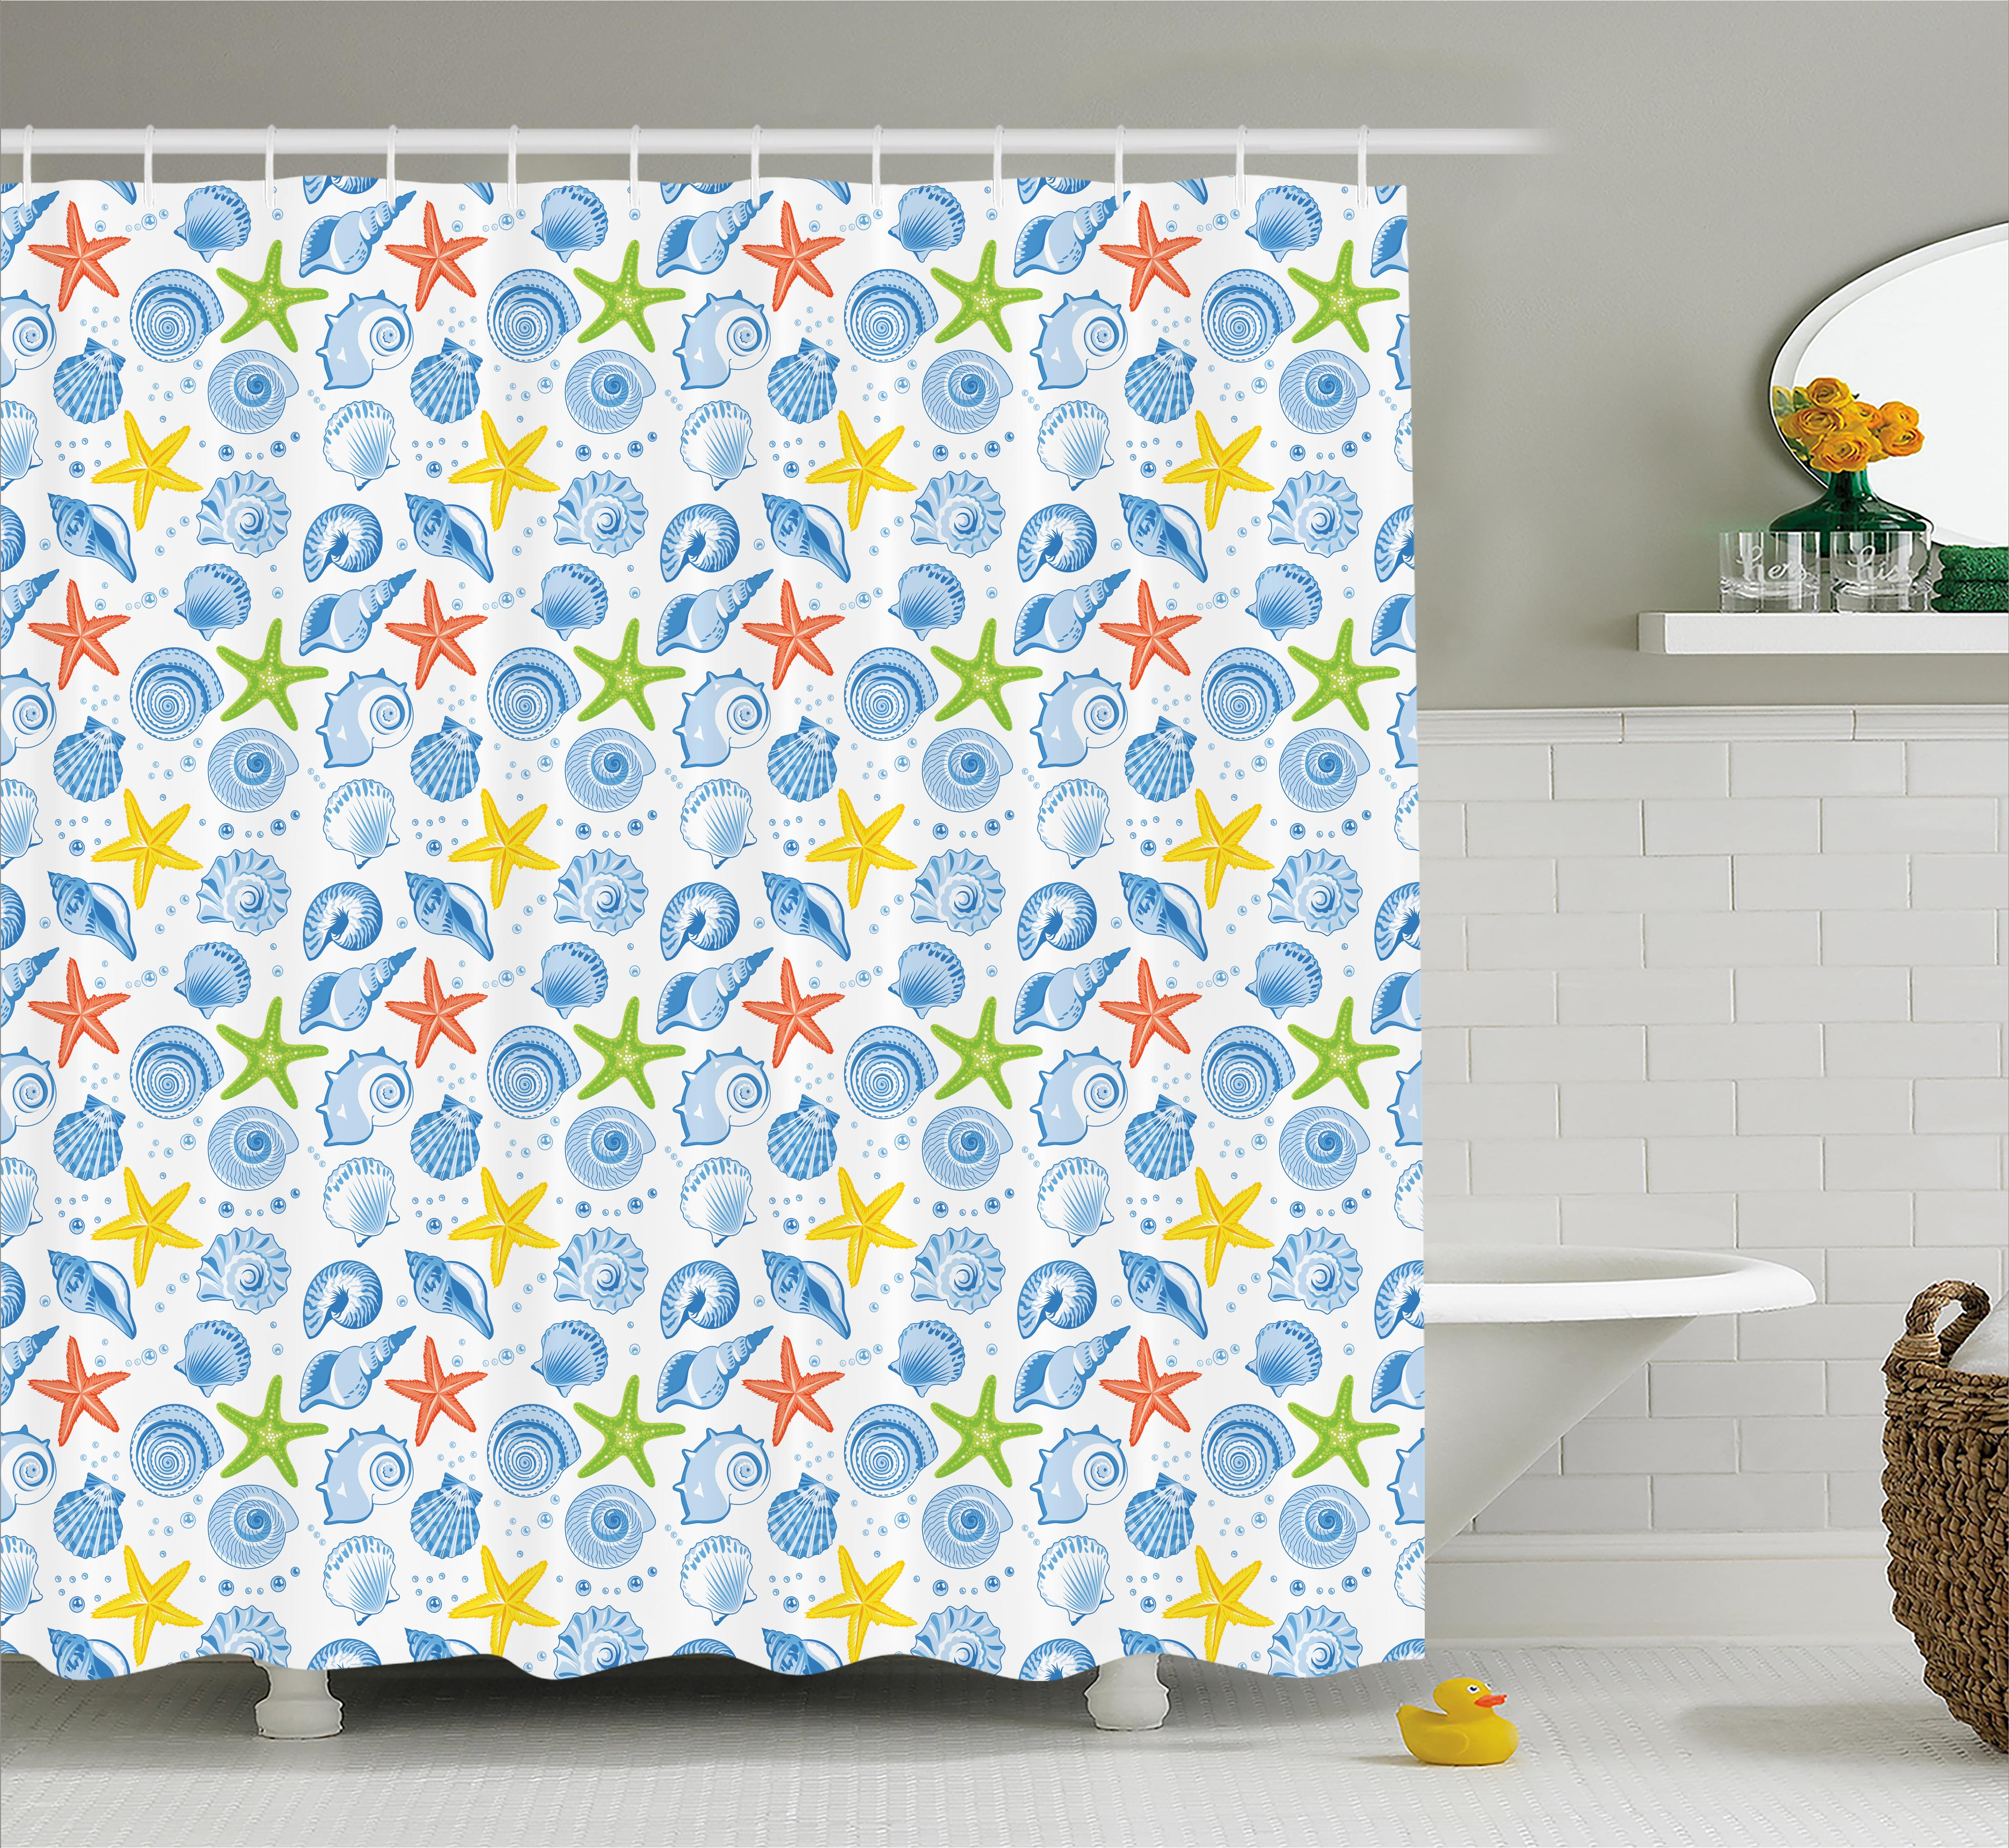 Yellow Submarine Shower Curtain Coral Reef Print for Bathroom